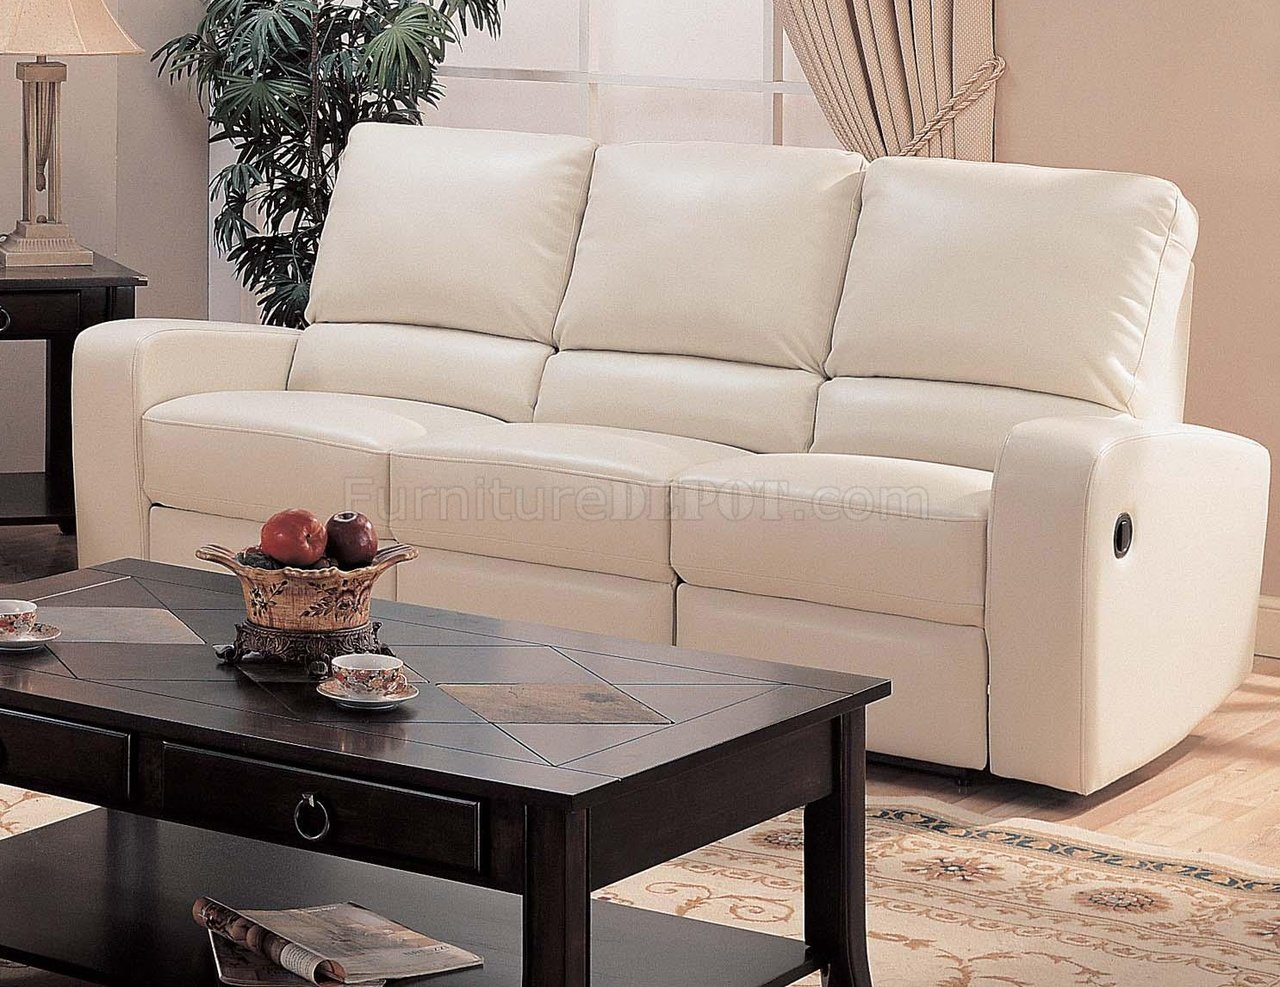 modern bonded leather sectional sofa with recliners company dallas review cream reclining living room w